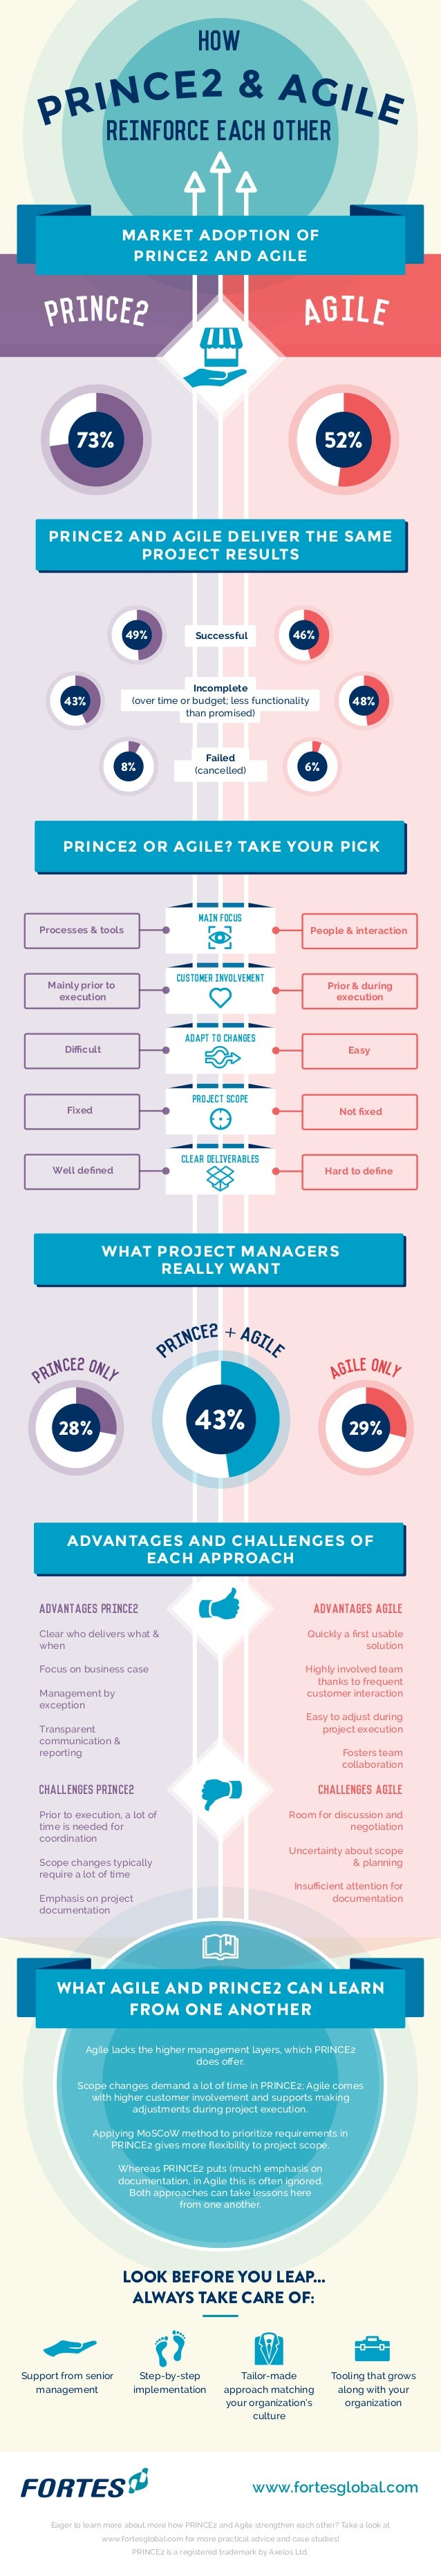 REINFORCE EACH OTHER MARKET ADOPTION OF PRINCE2 AND AGILE WHAT AGILE AND PRINCE2 CAN LEARN FROM ONE ANOTHER PRINCE2 AND AG...